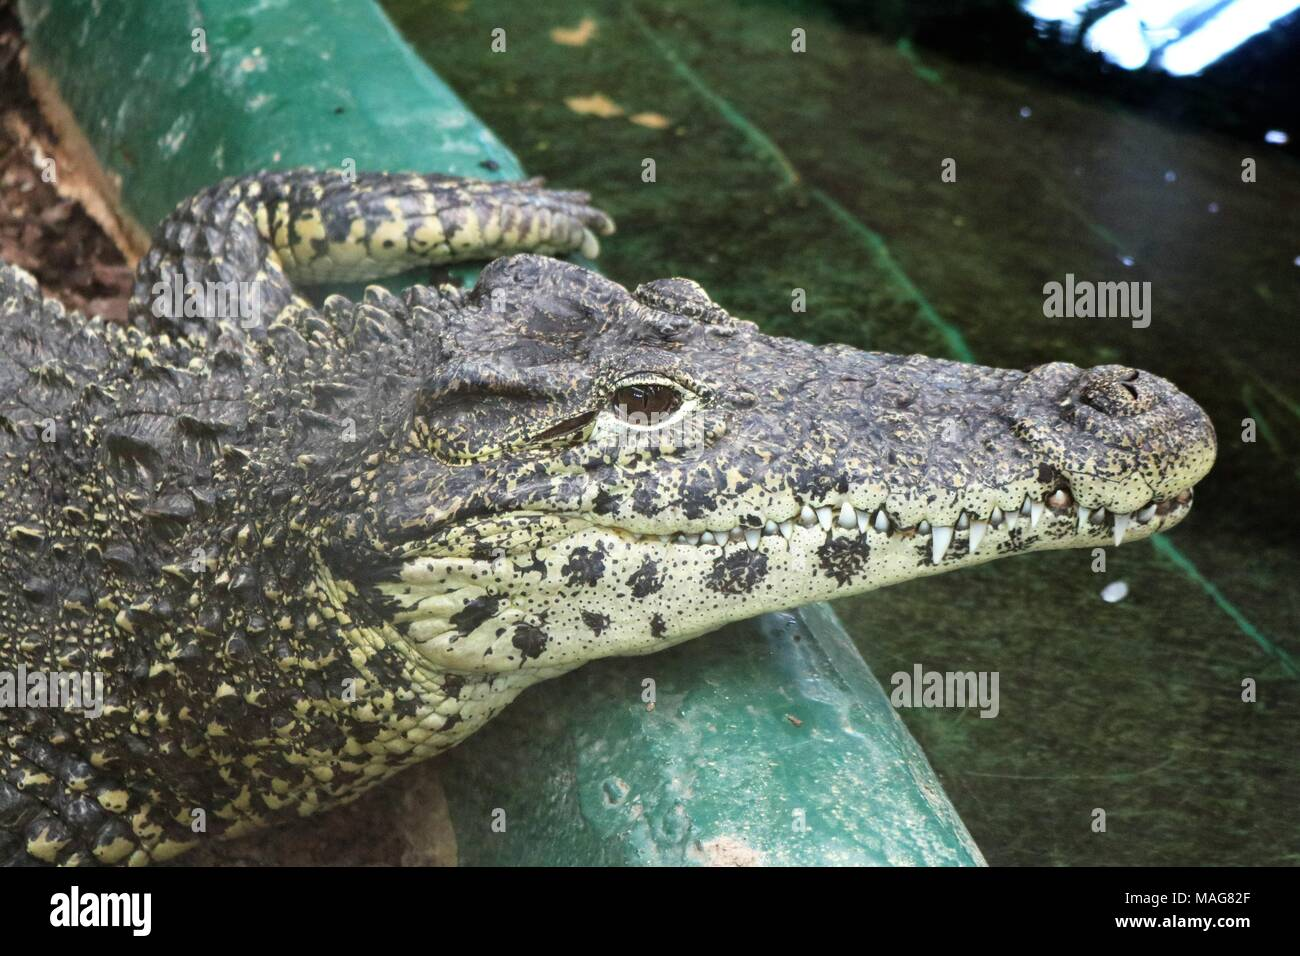 Black Caiman alligator lying on a rock near water at a visitors attraction - Stock Image